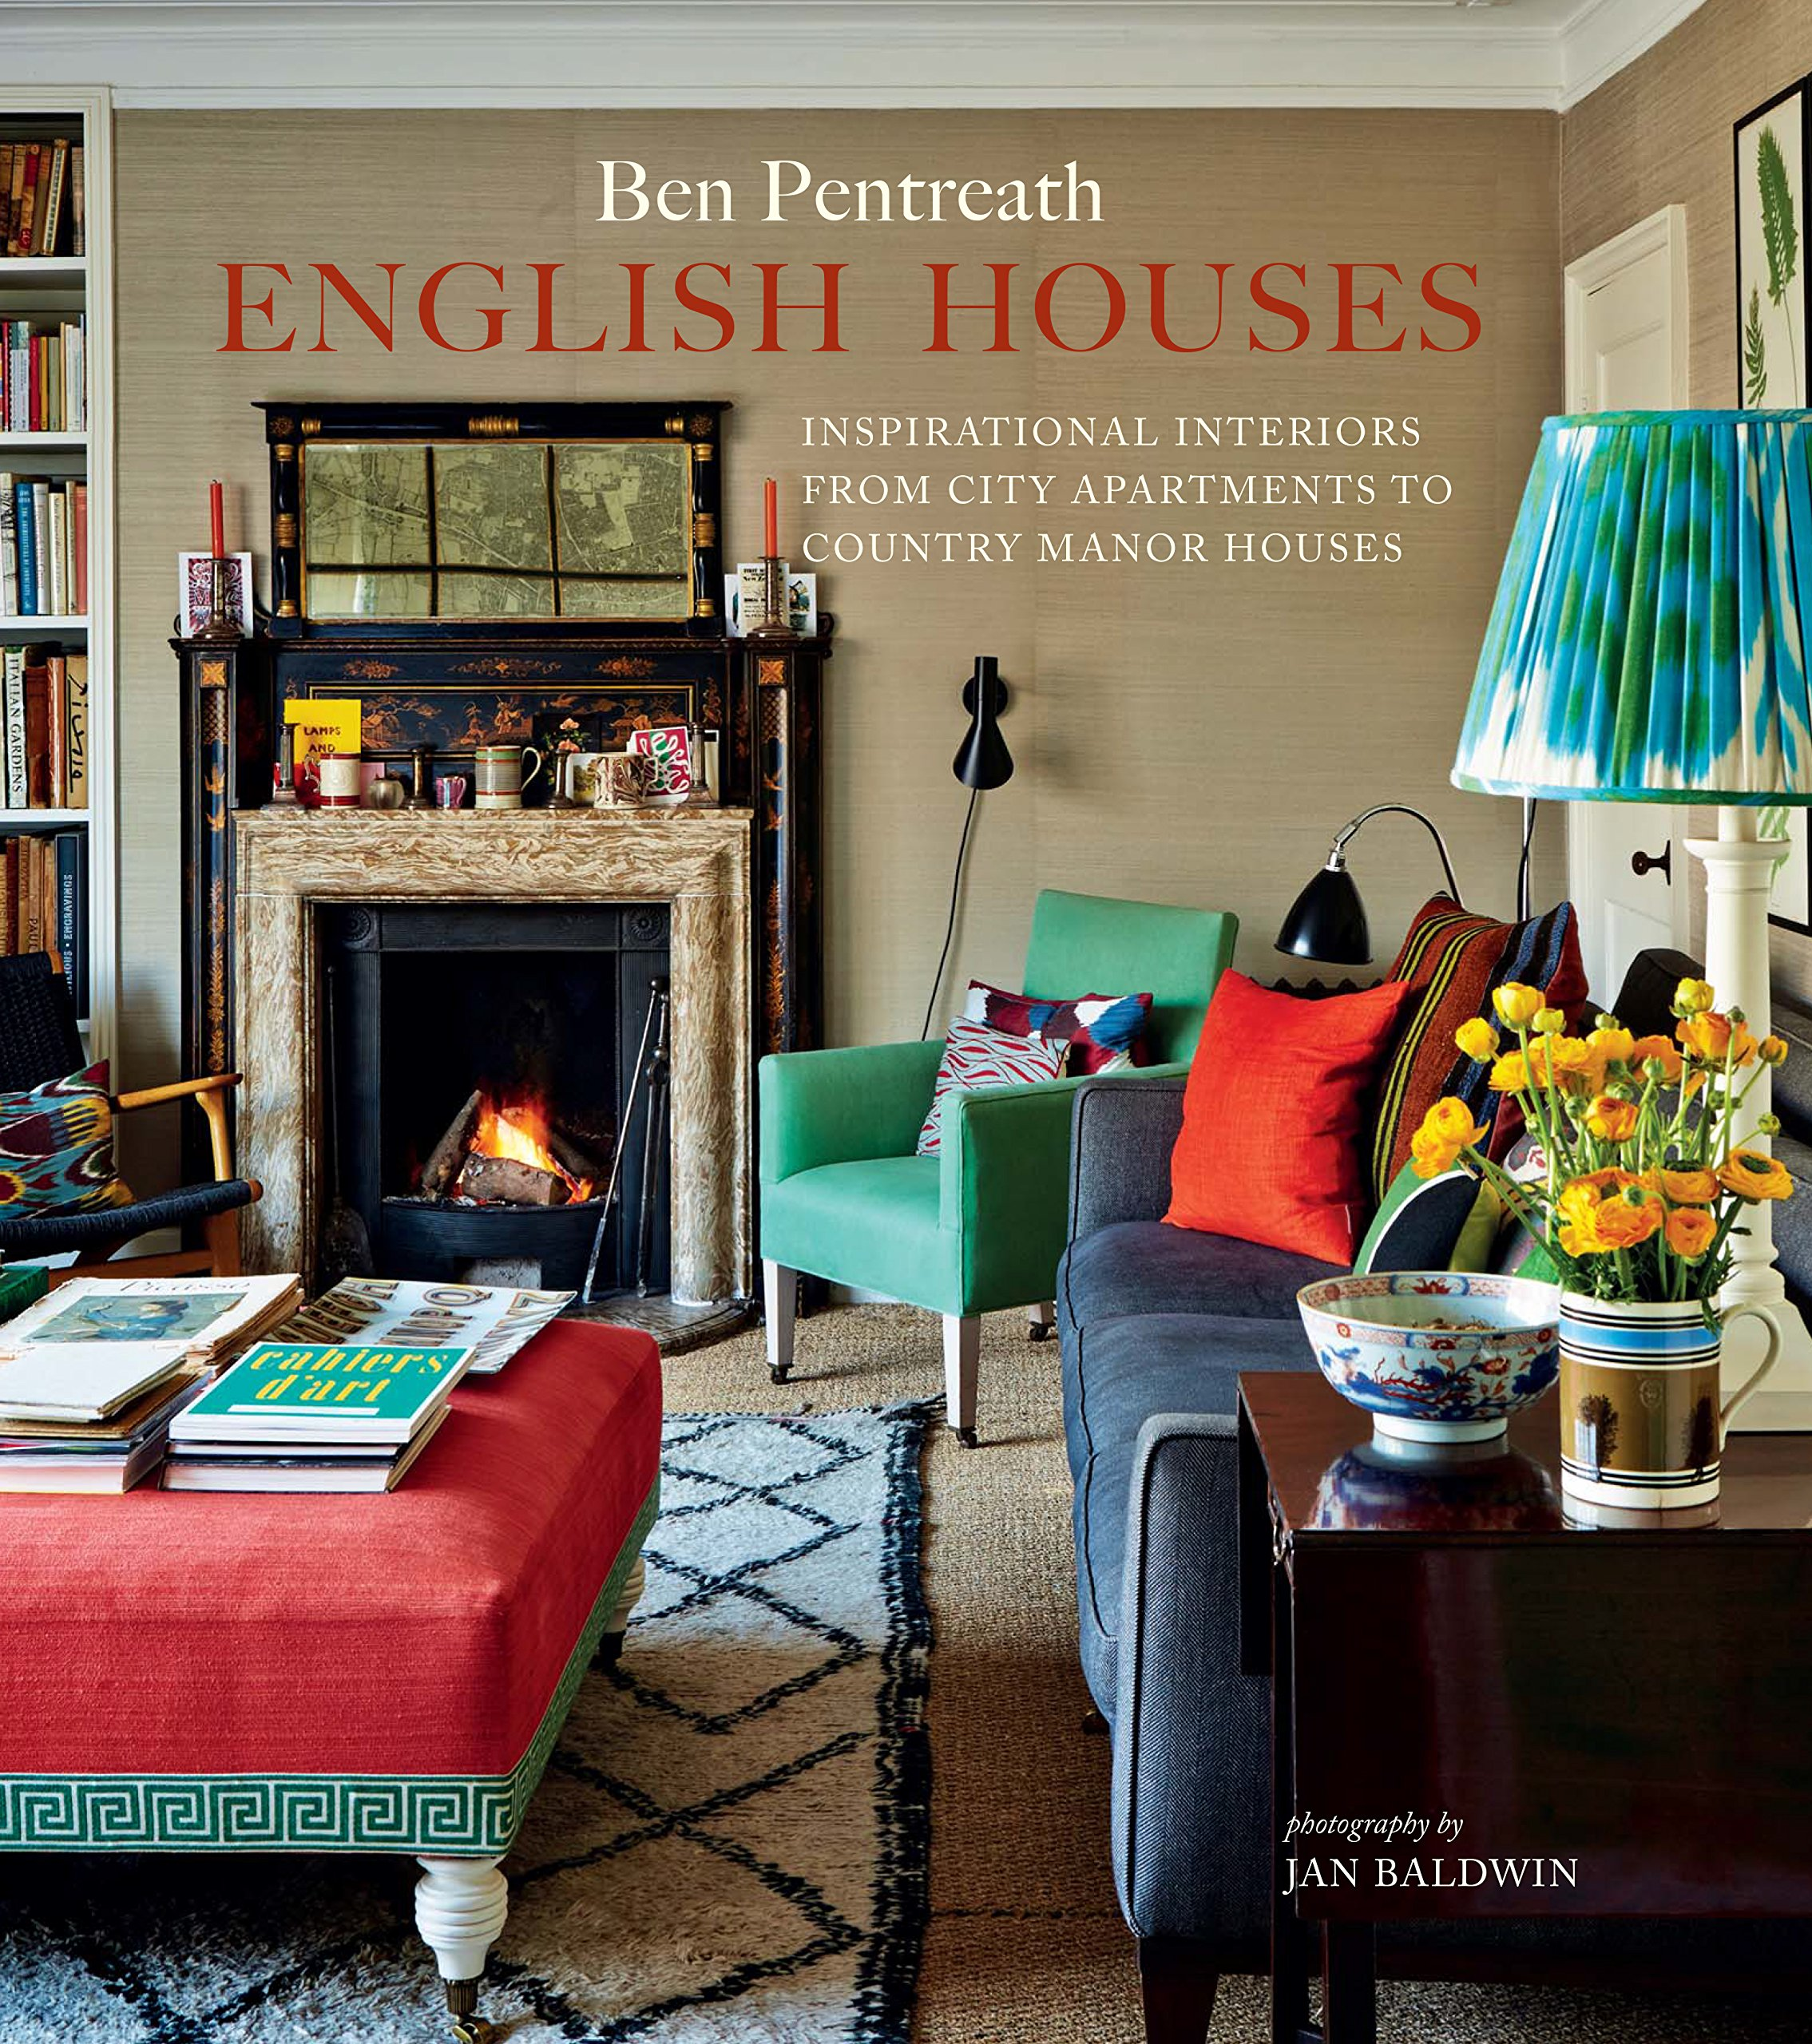 English Houses  Inspirational Interiors from City Apartments to Country  Manor Houses  Ben Pentreath  9781849757539  Amazon com  Books. English Houses  Inspirational Interiors from City Apartments to